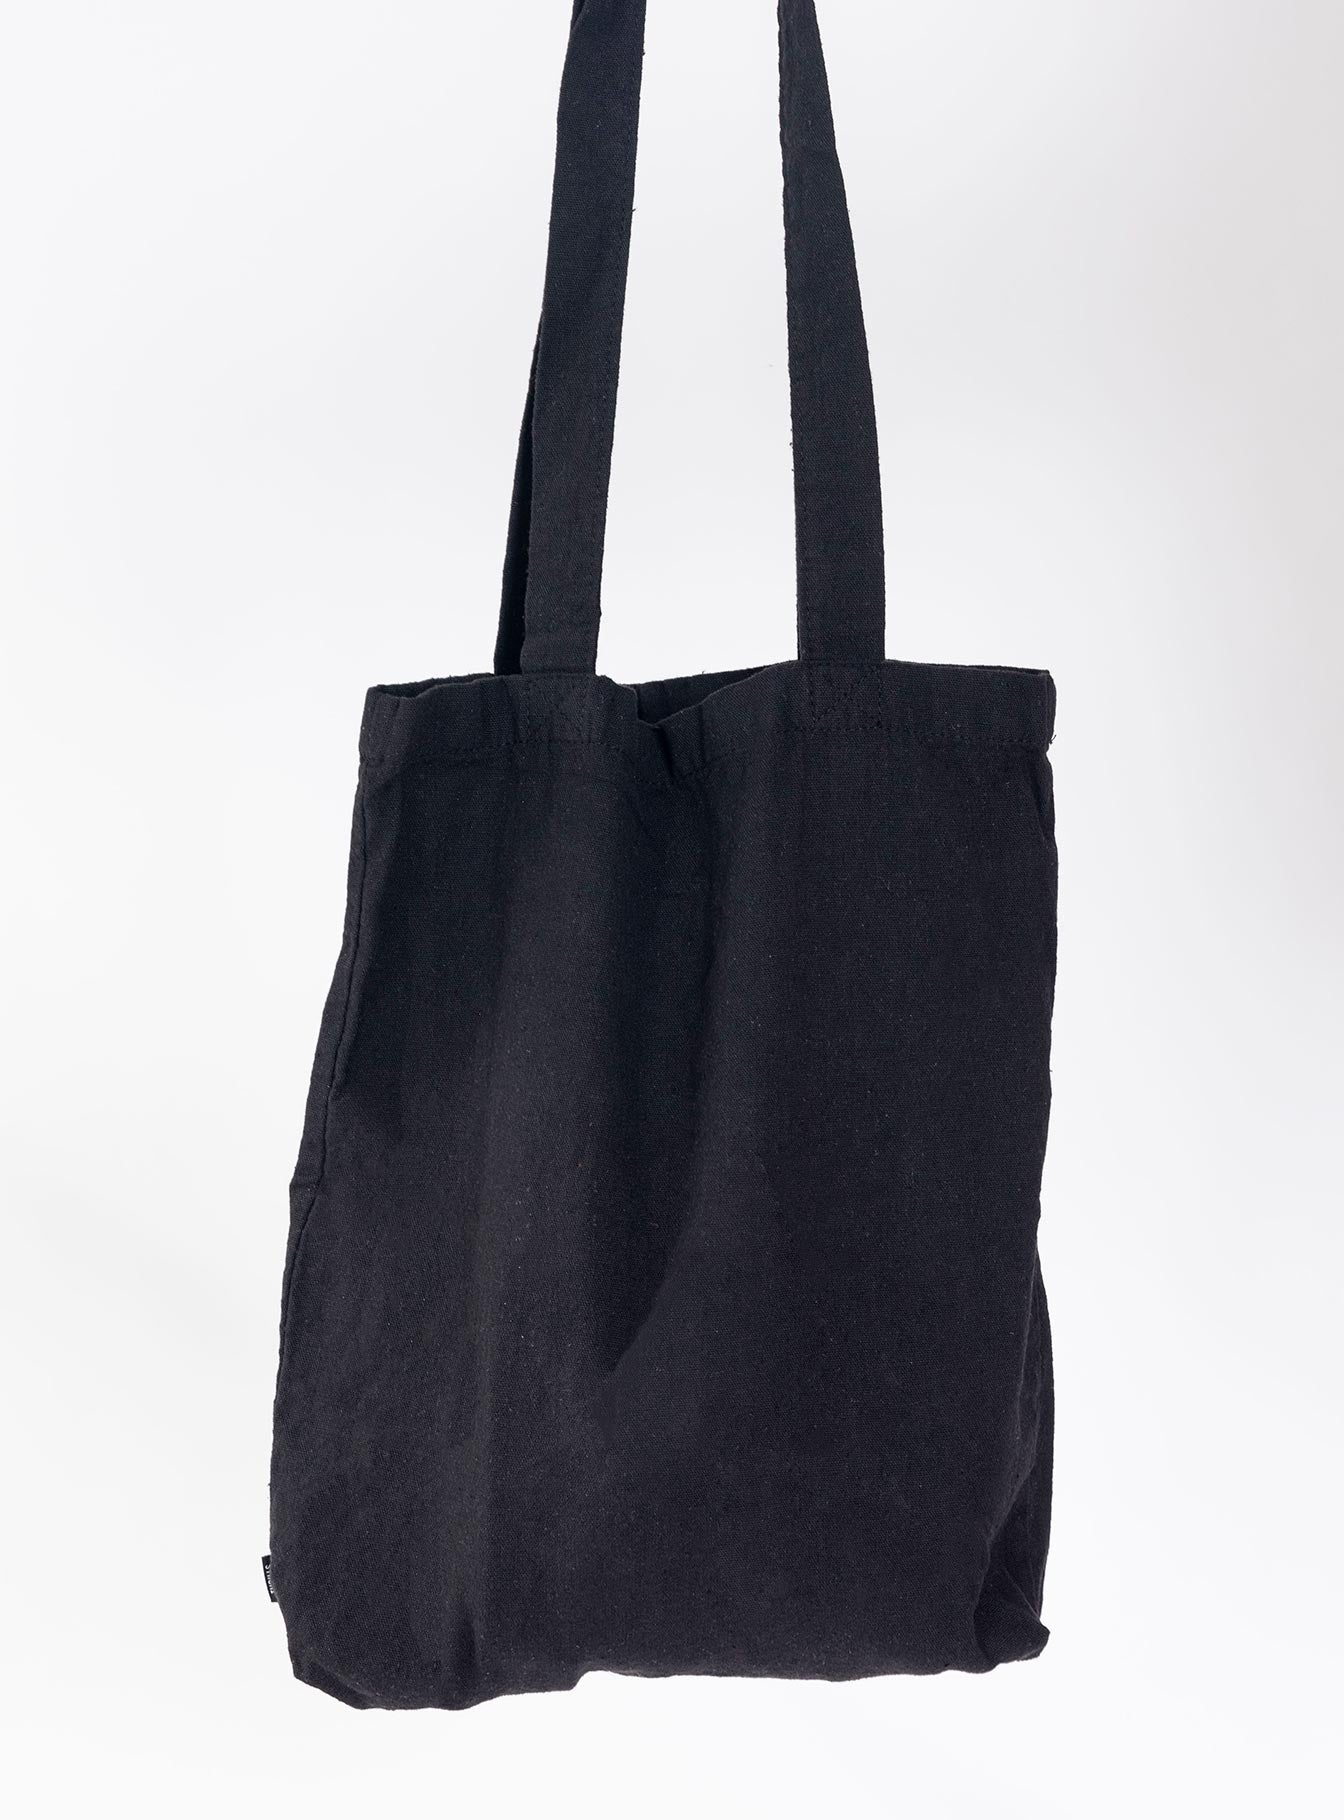 Thrills Flyer Tote Black